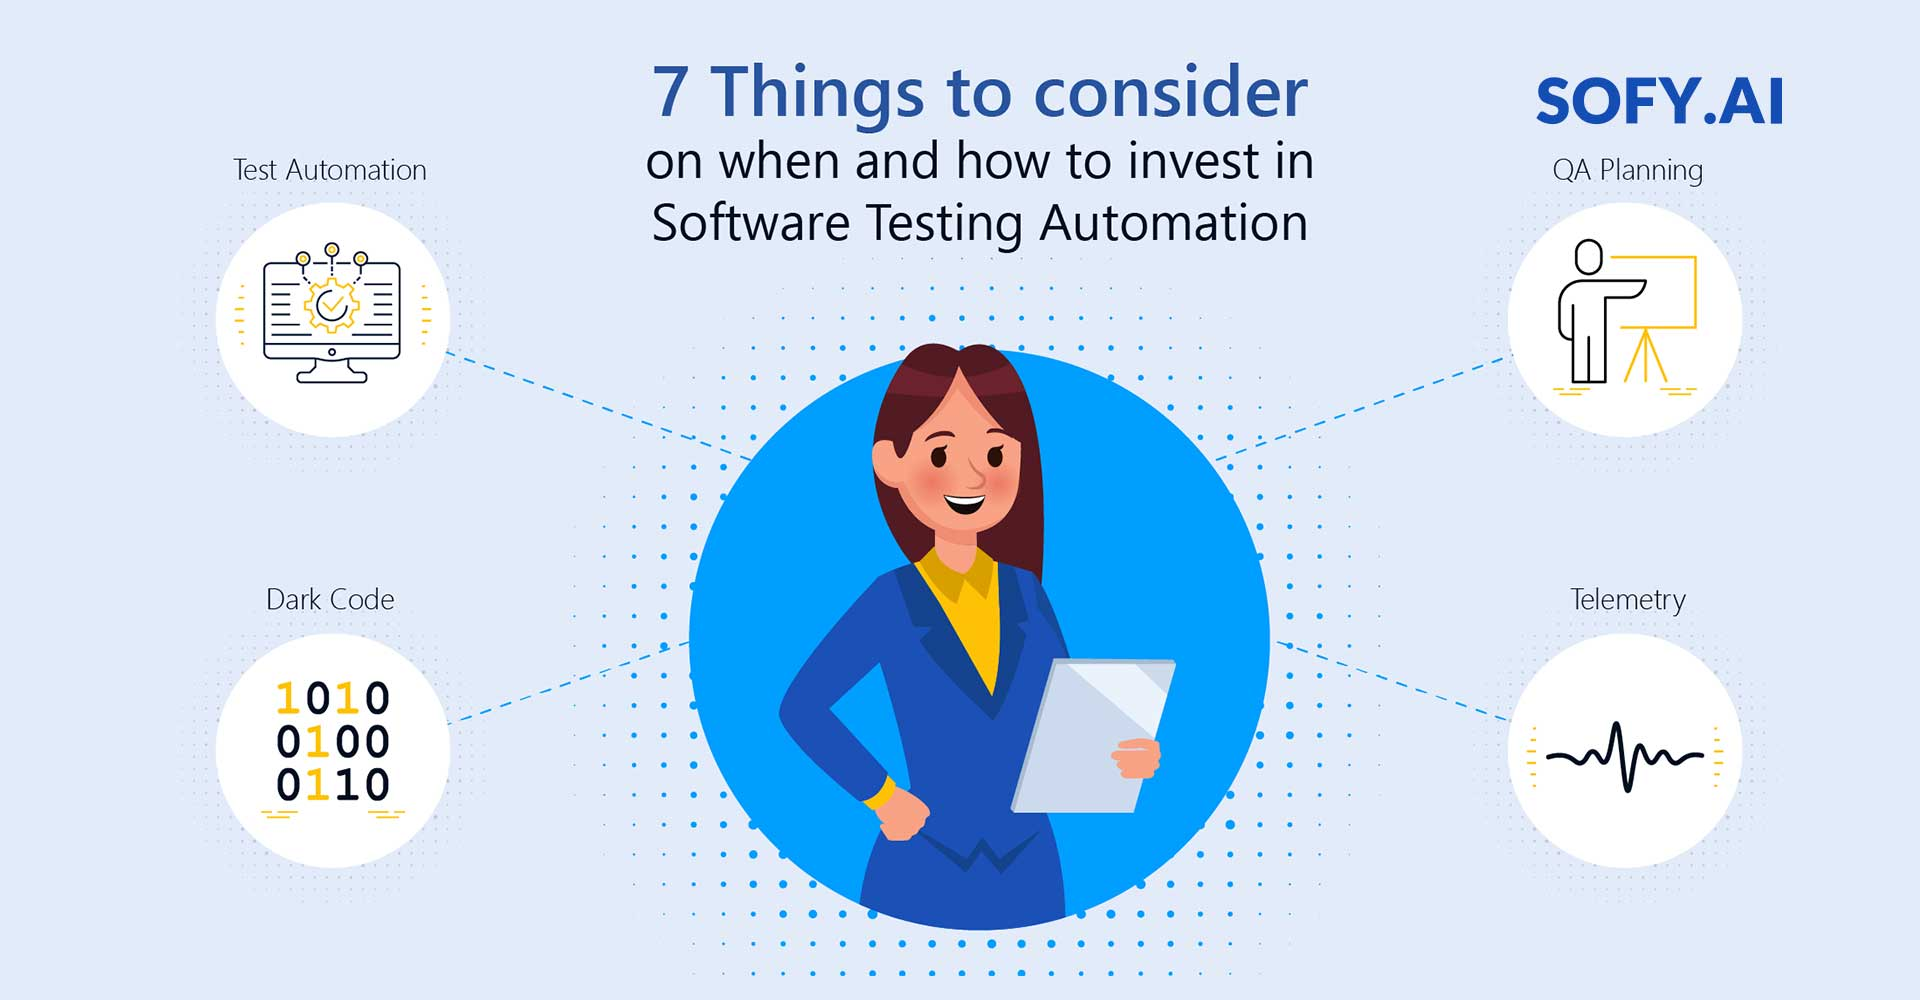 7 Things to consider on when and how to Invest in Software Testing Automation